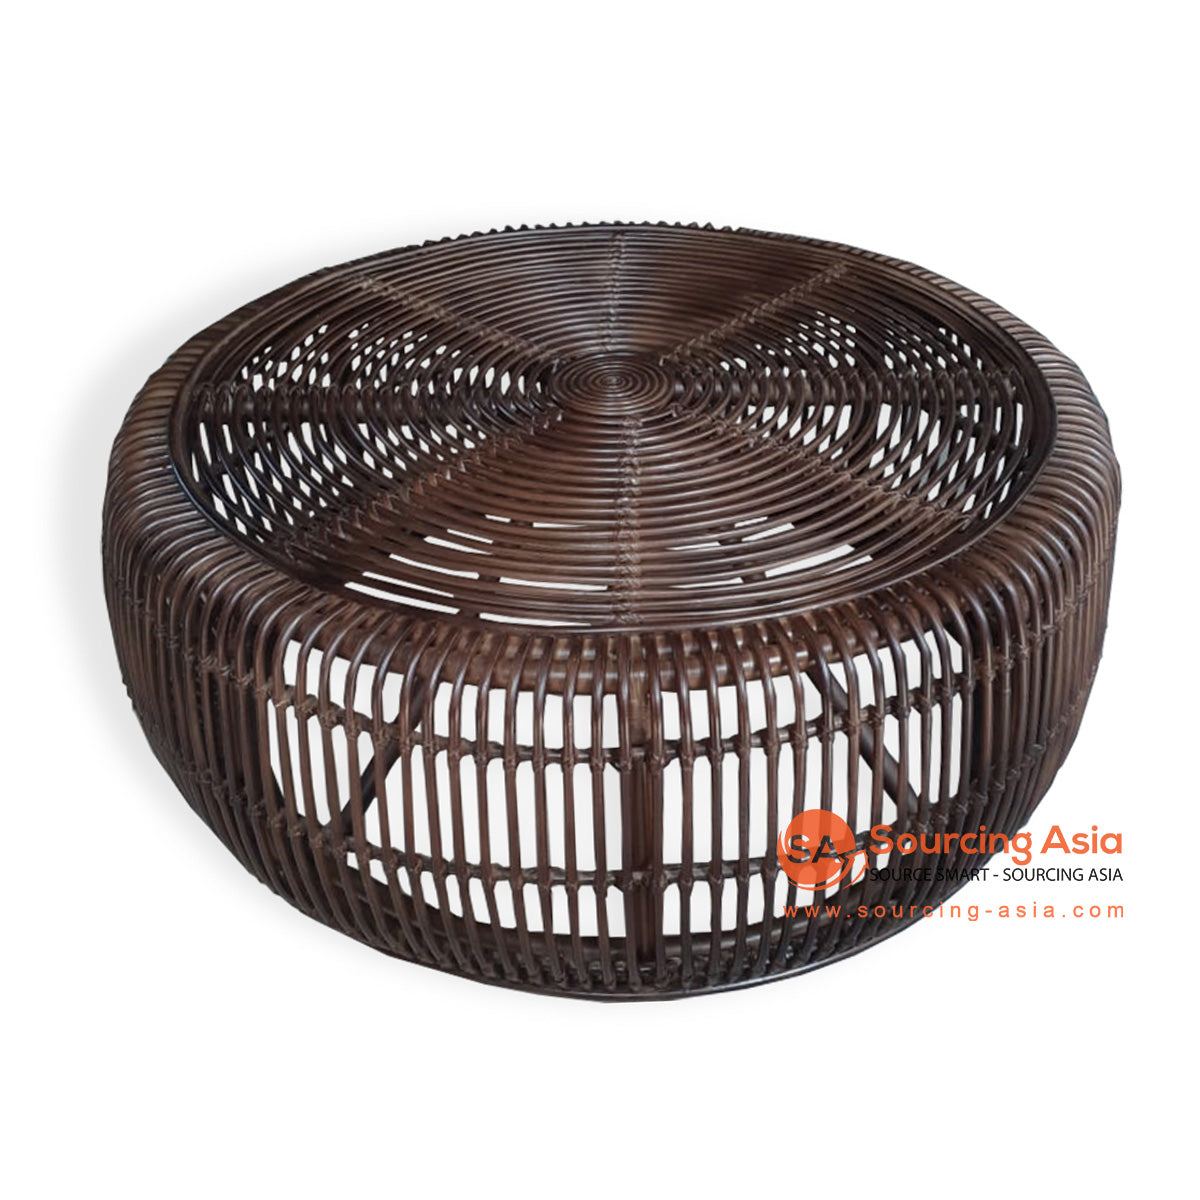 BNT198 RATTAN COFFEE TABLE